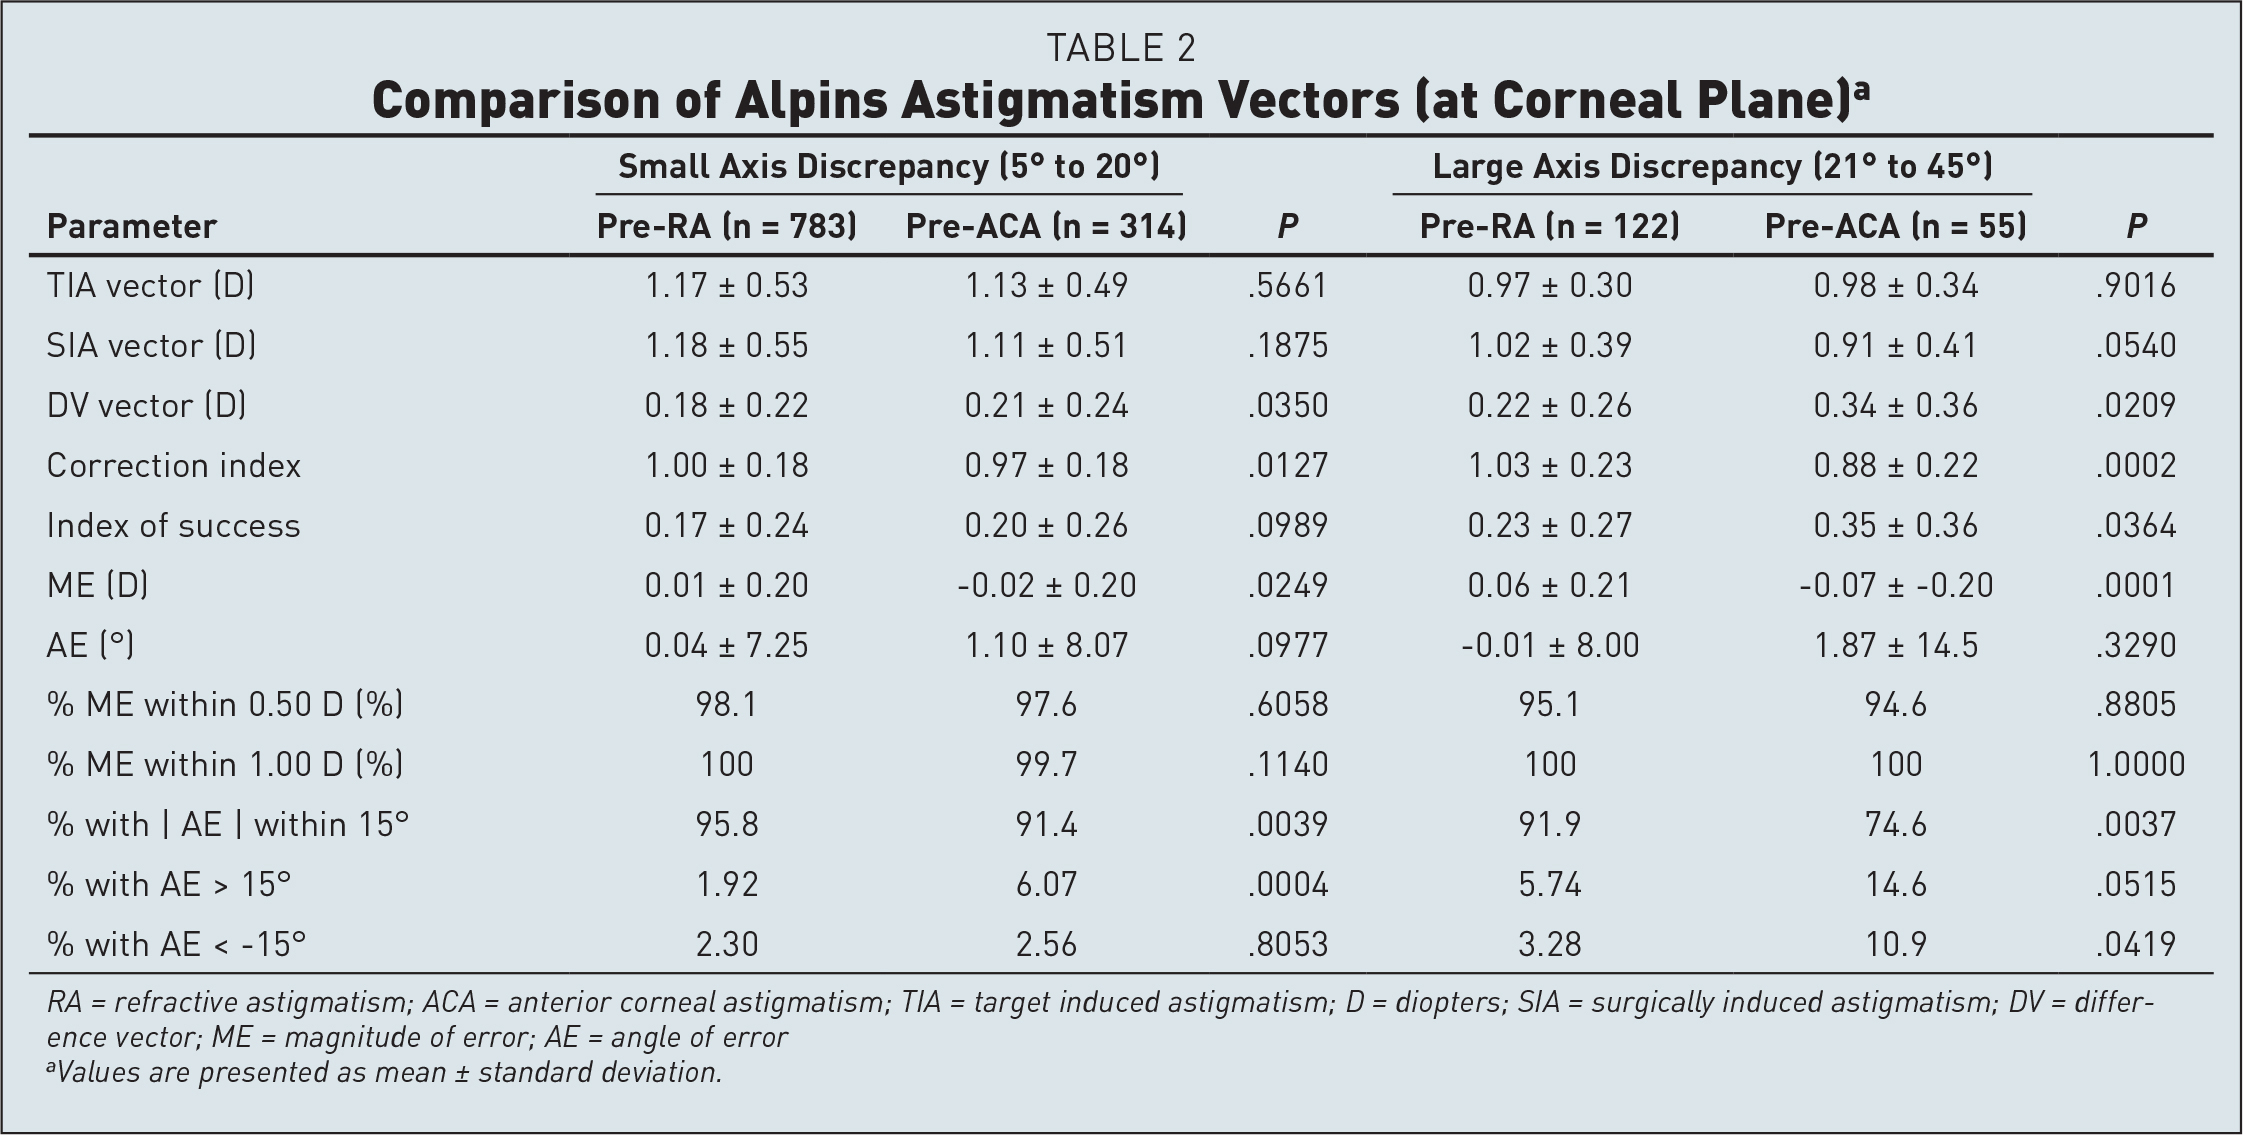 Comparison of Alpins Astigmatism Vectors (at Corneal Plane)a